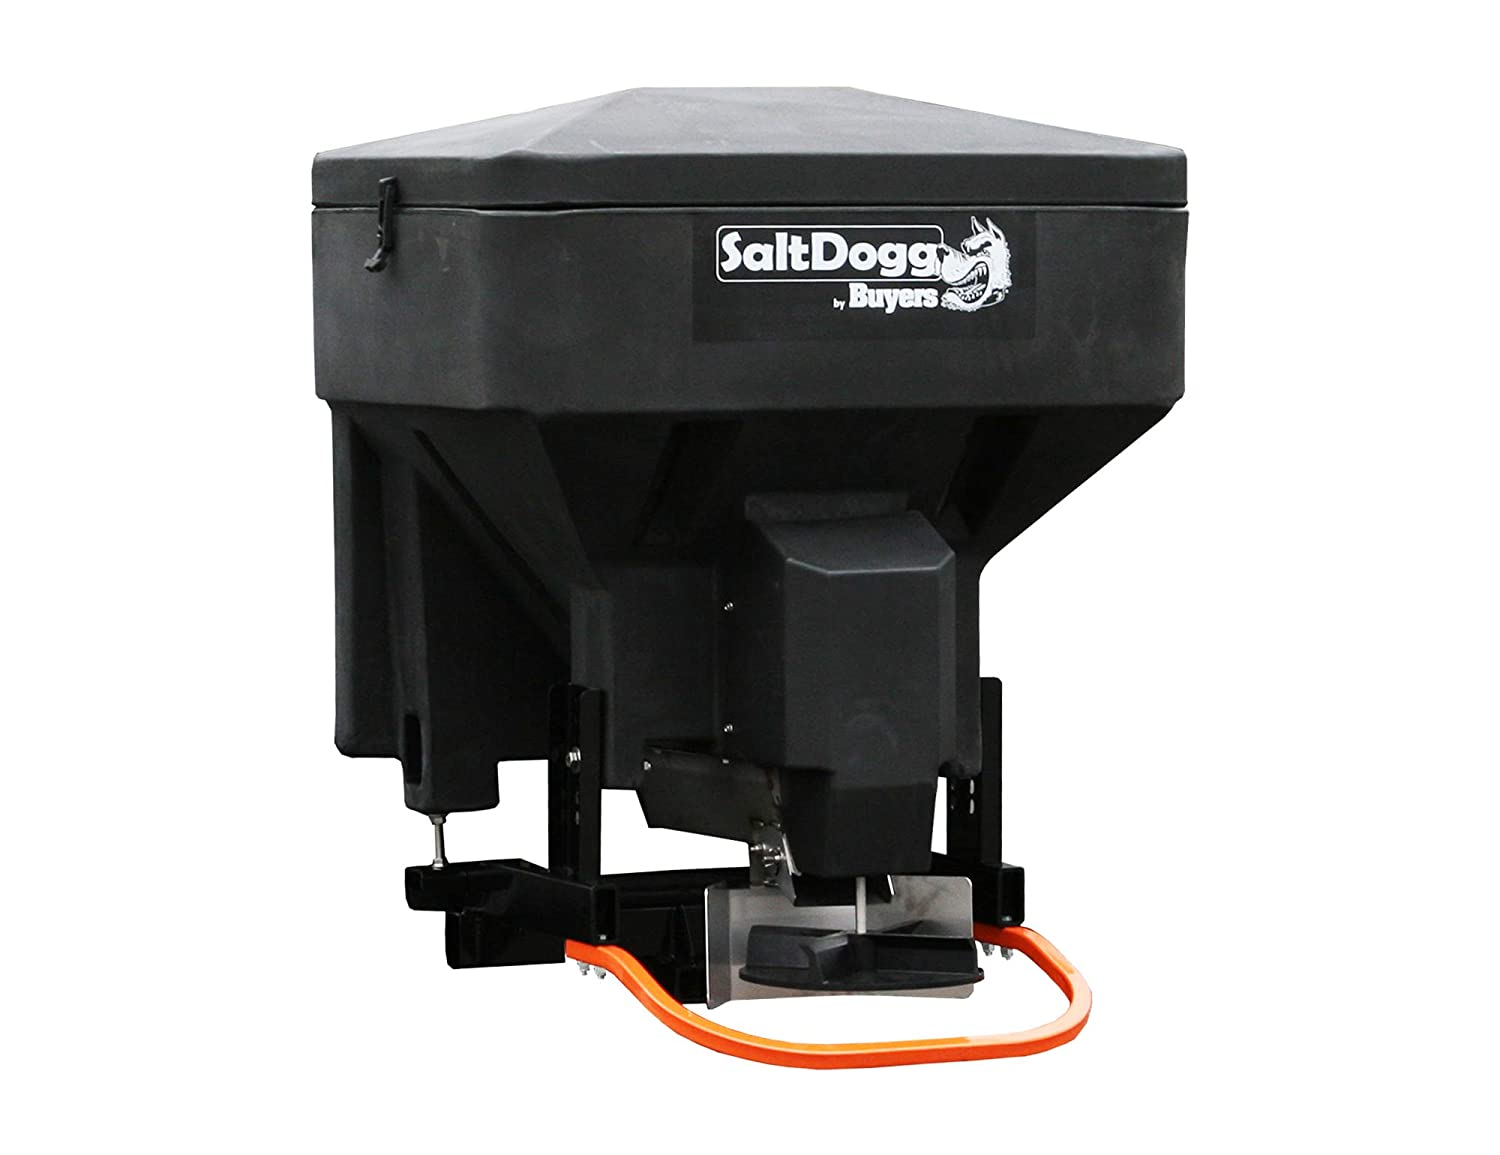 SaltDogg TGS03 Tailgate Spreader for 1/2-Ton and 3/4-Ton Trucks